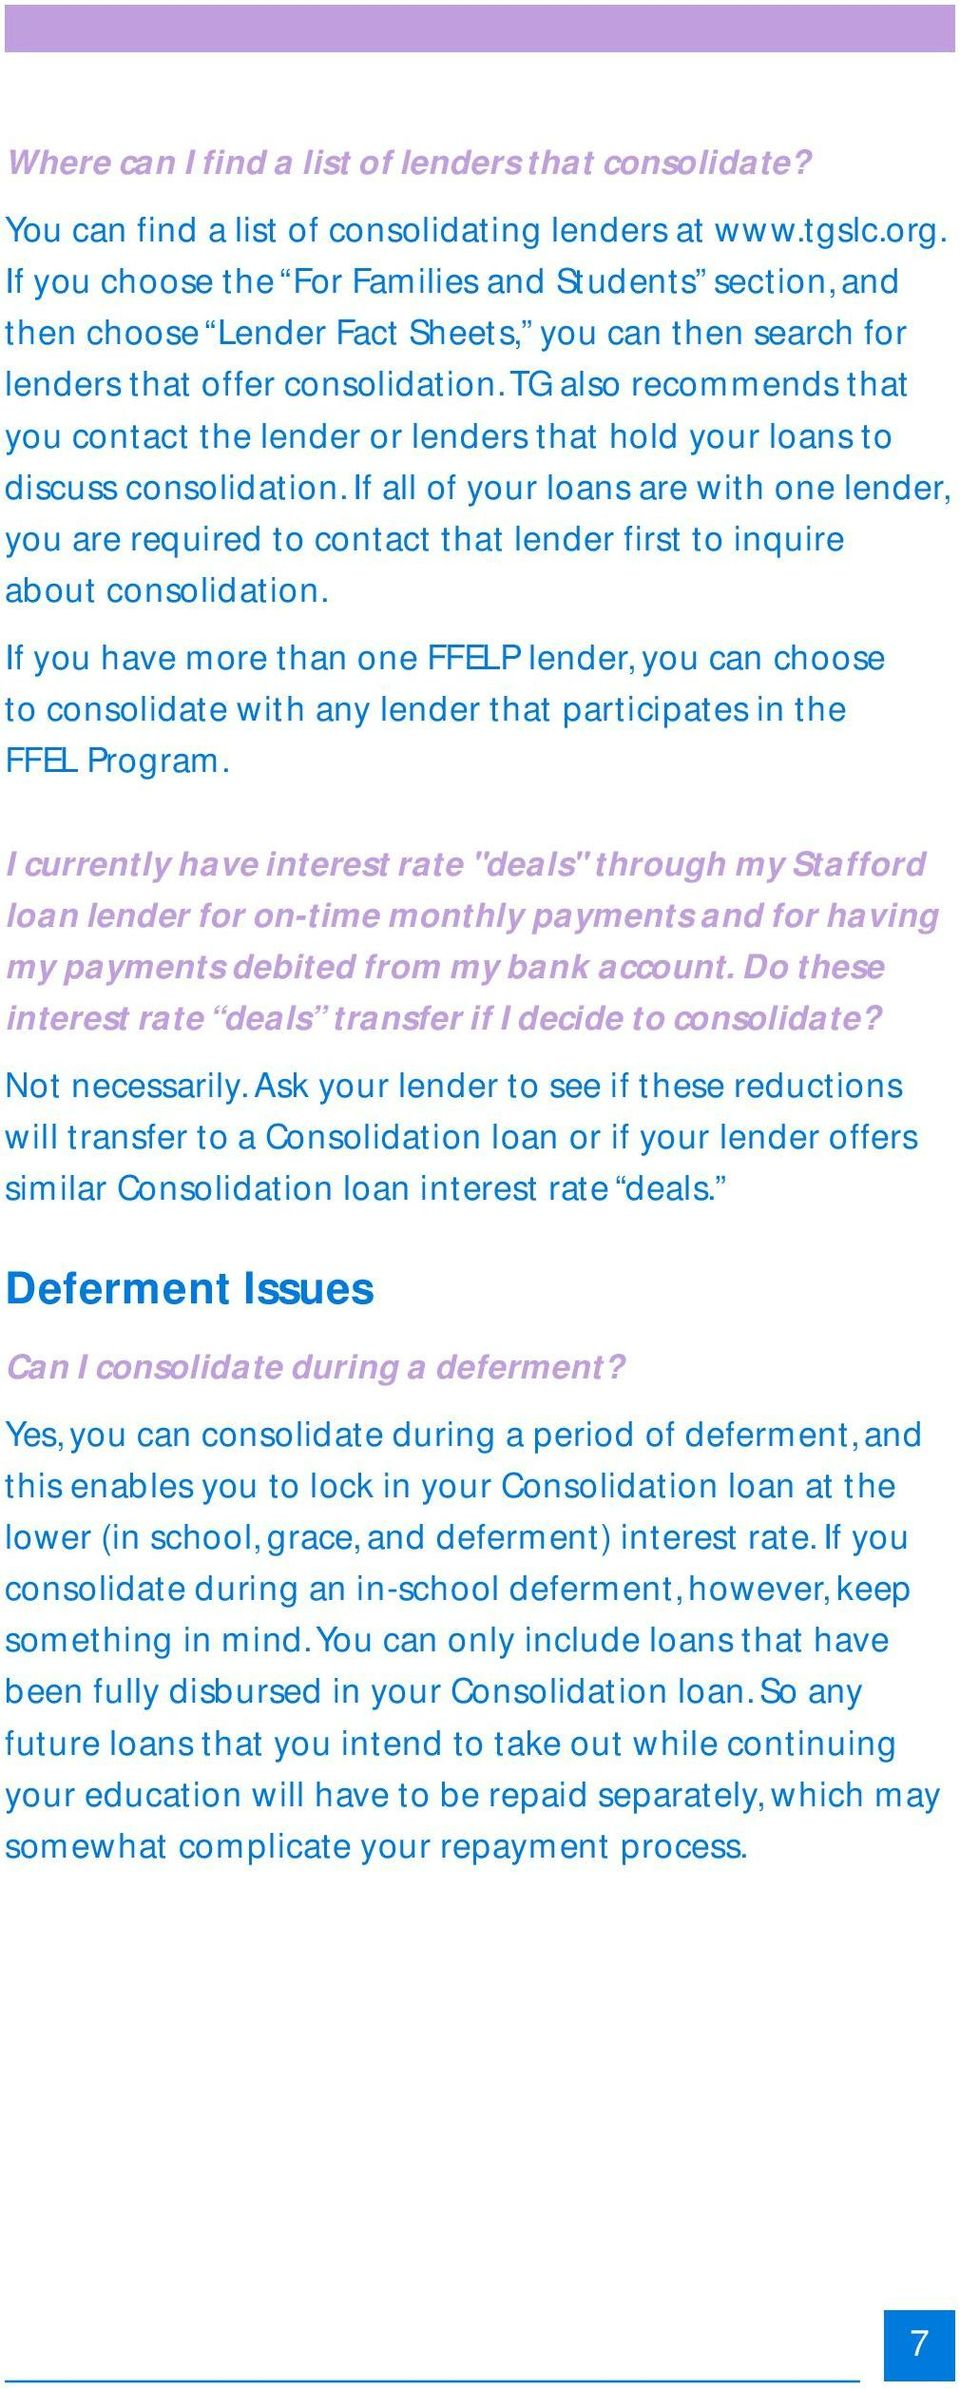 TG also recommends that you contact the lender or lenders that hold your loans to discuss consolidation.